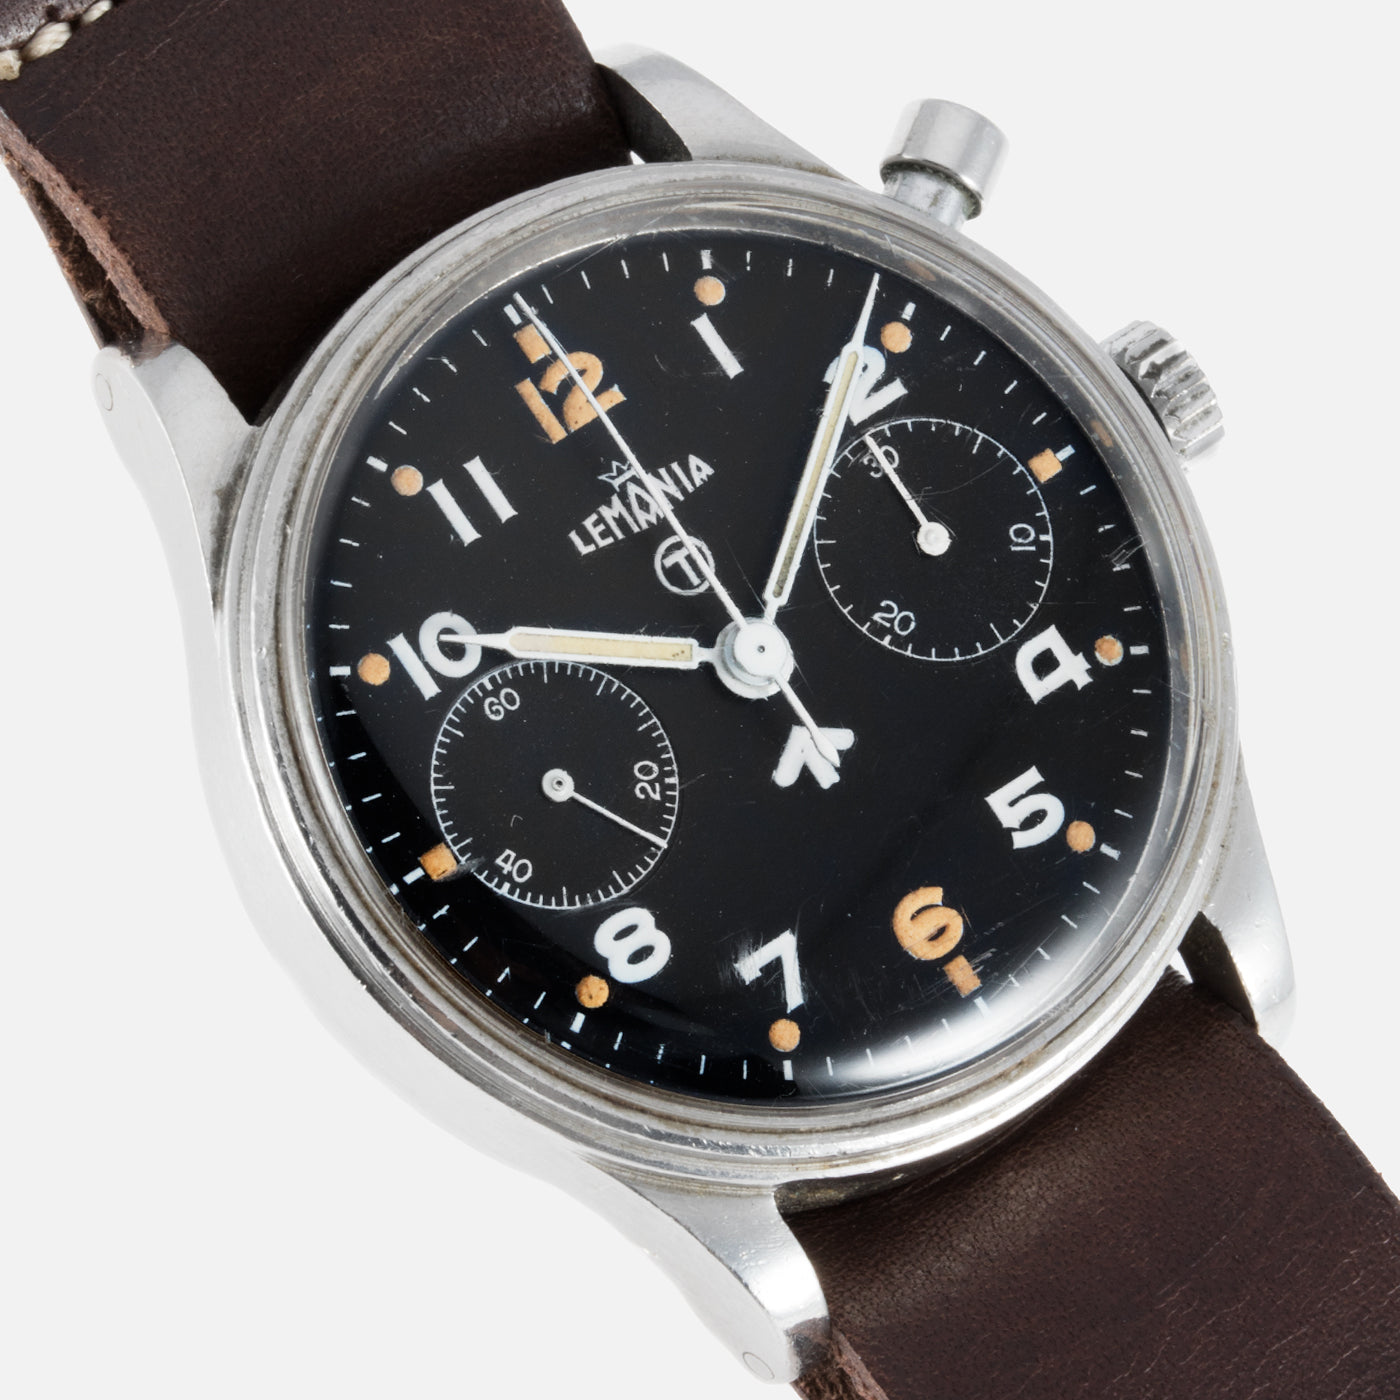 Lemania Series 2 Royal Navy Monopusher Chronograph